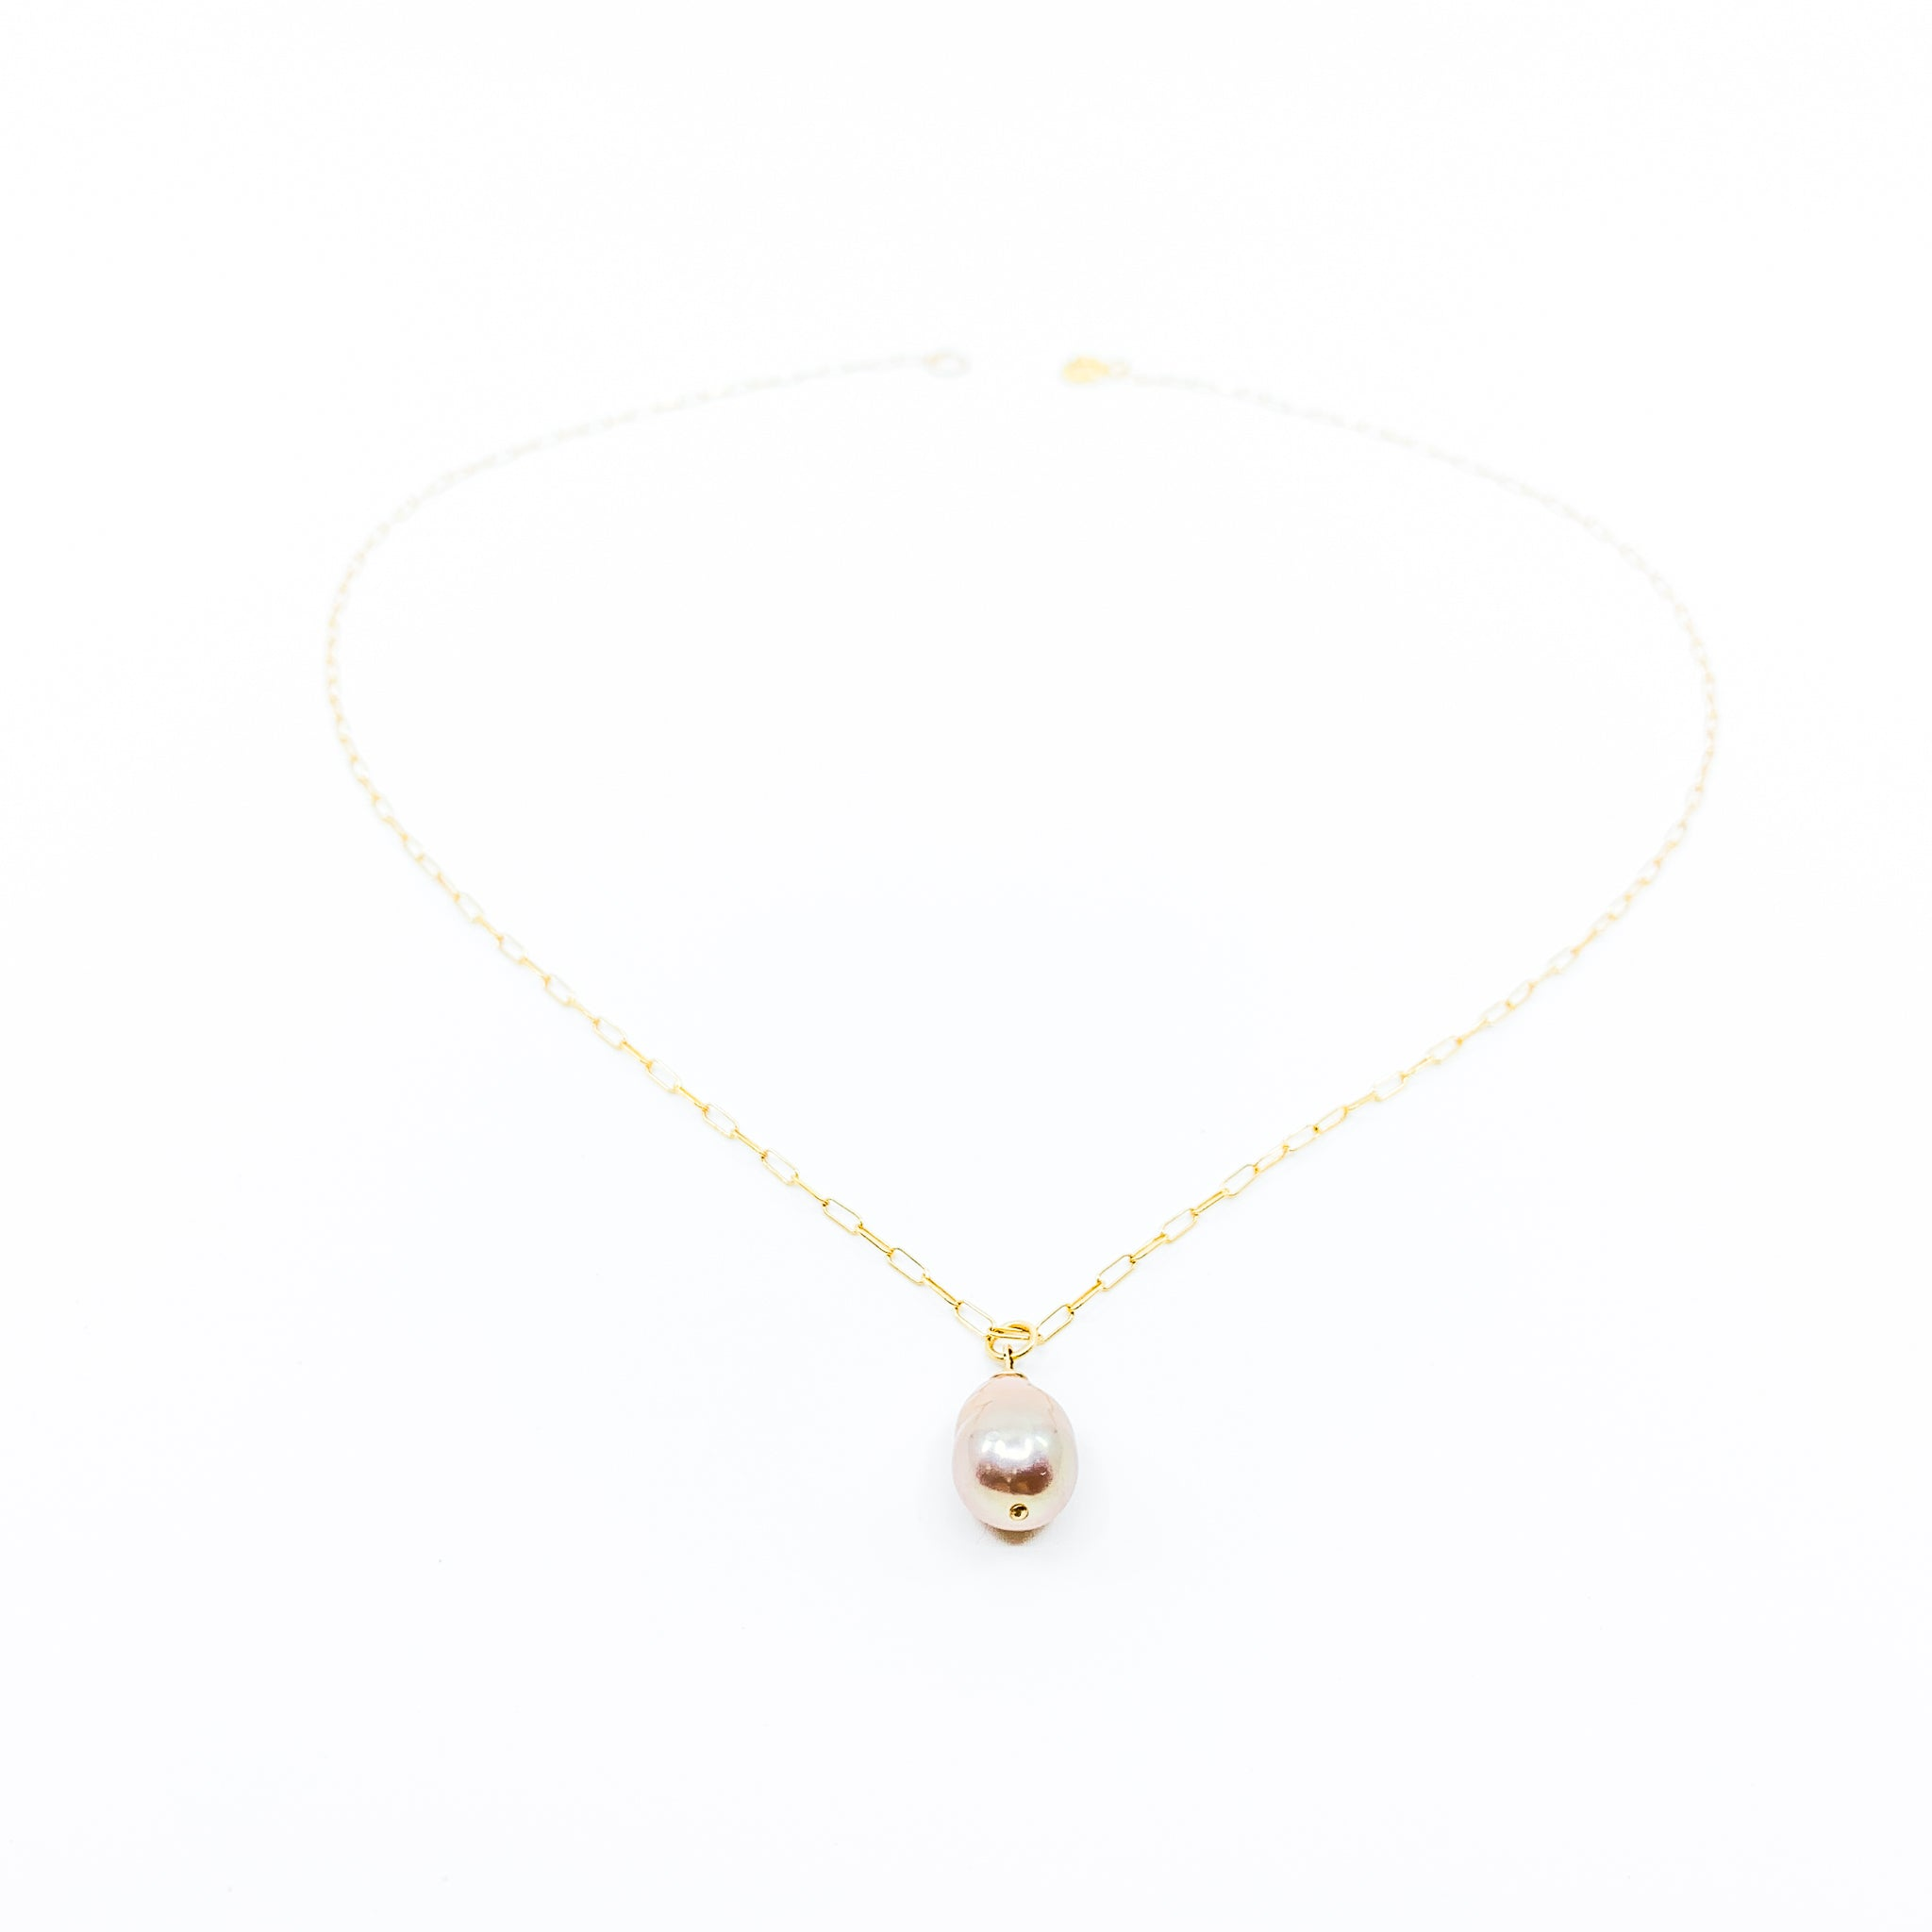 simple gold chain natural color pink baroque pearl necklace by eve black jewelry made in Hawaii  Edit alt text